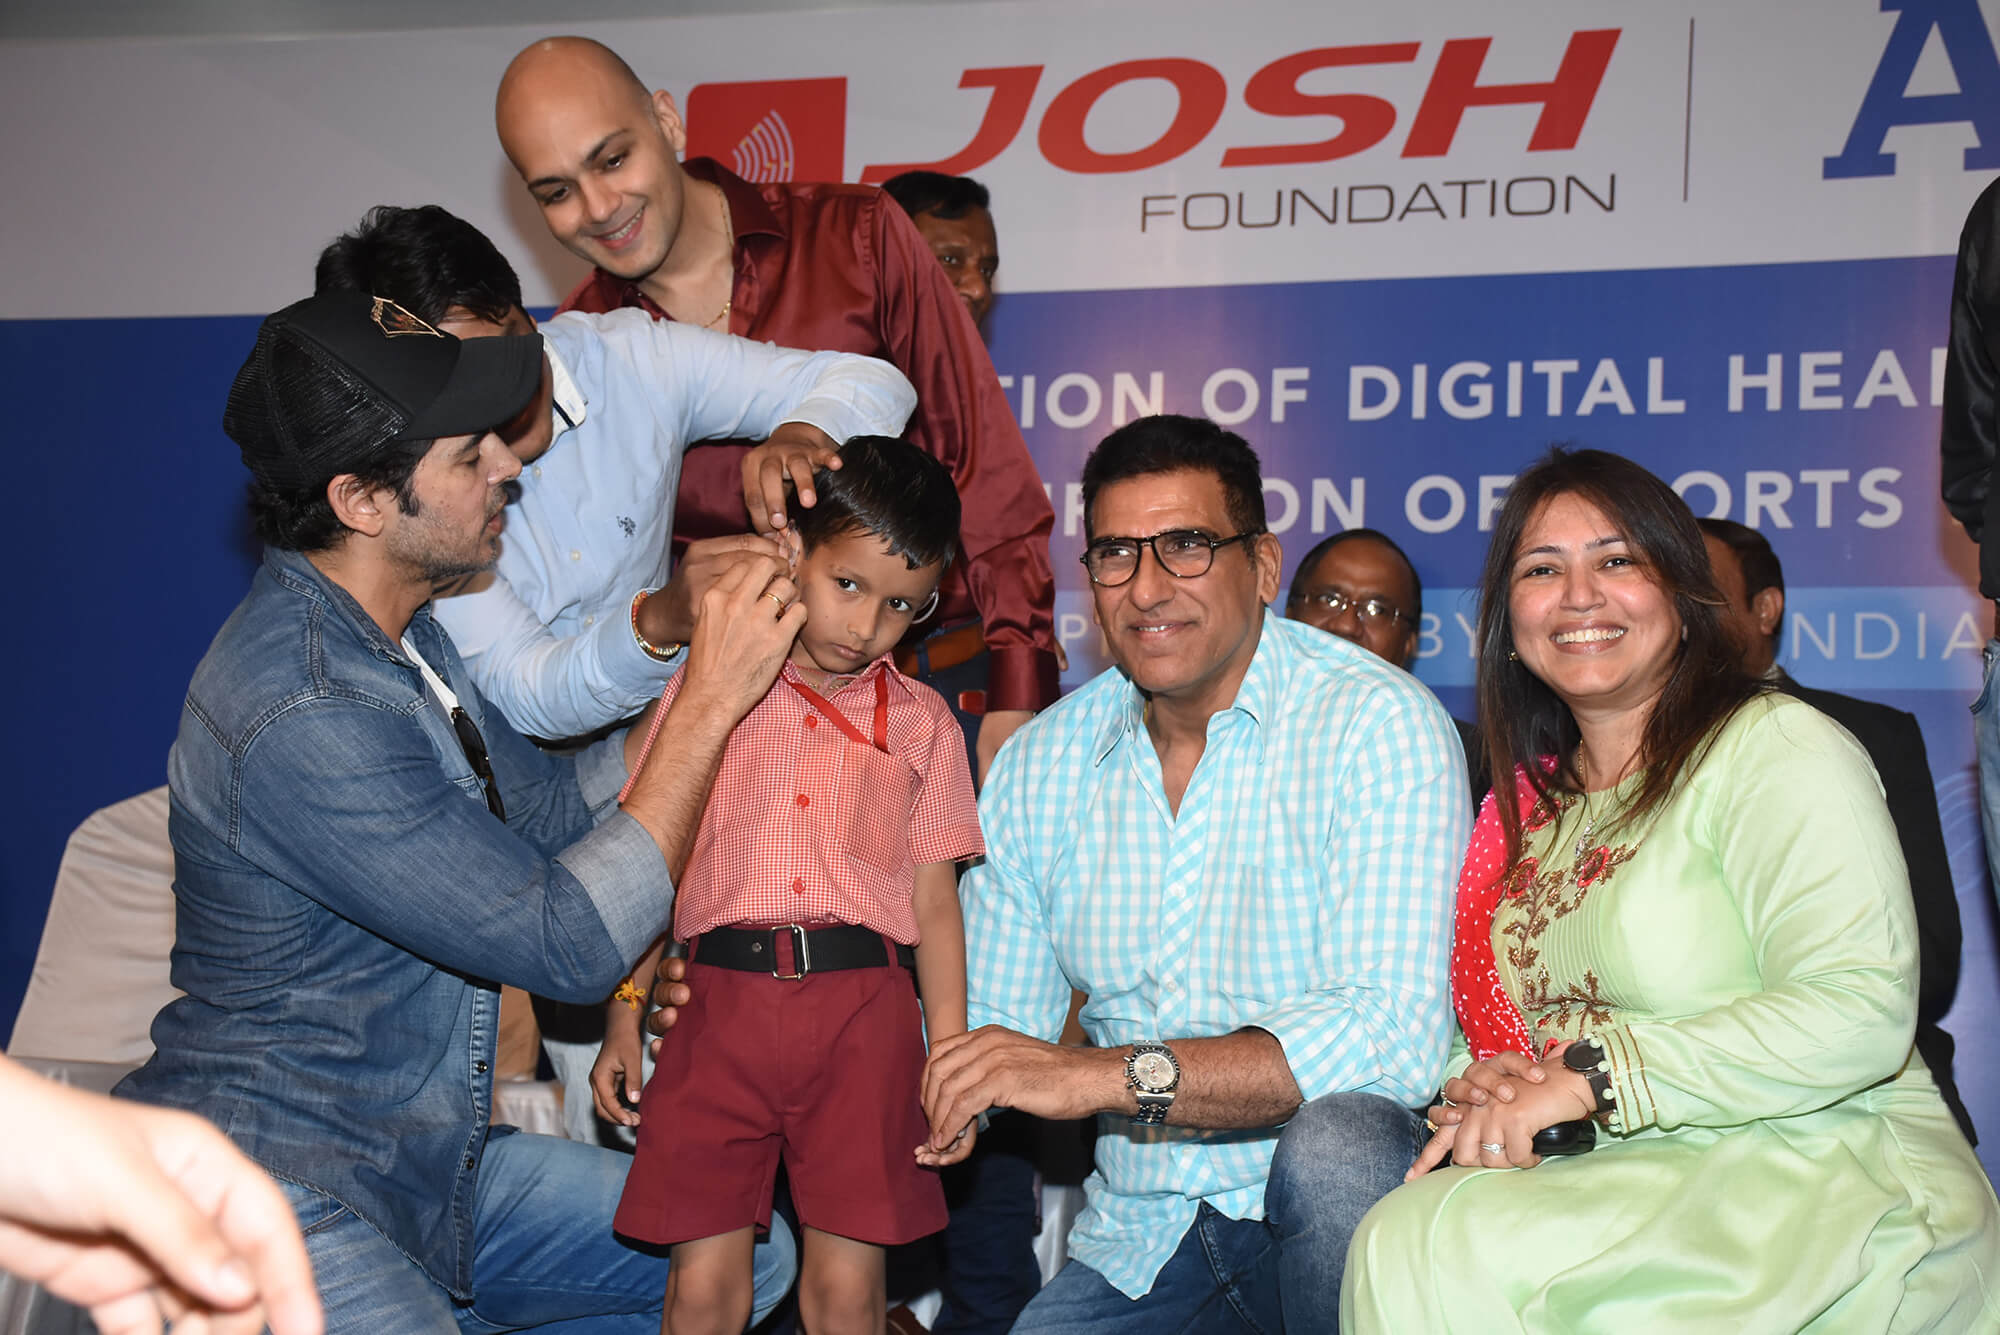 Dino-Morea-helps-fit-a-hearing-aid-to-a-kid-as-Dr.Farhad-Vijay-Arora-Mukesh-Rishi-and-Devangi-Dalal-watch-on-at-the-JOSH-Foundation-ATOS-free-digital-hearing-aid-distribution-initiative